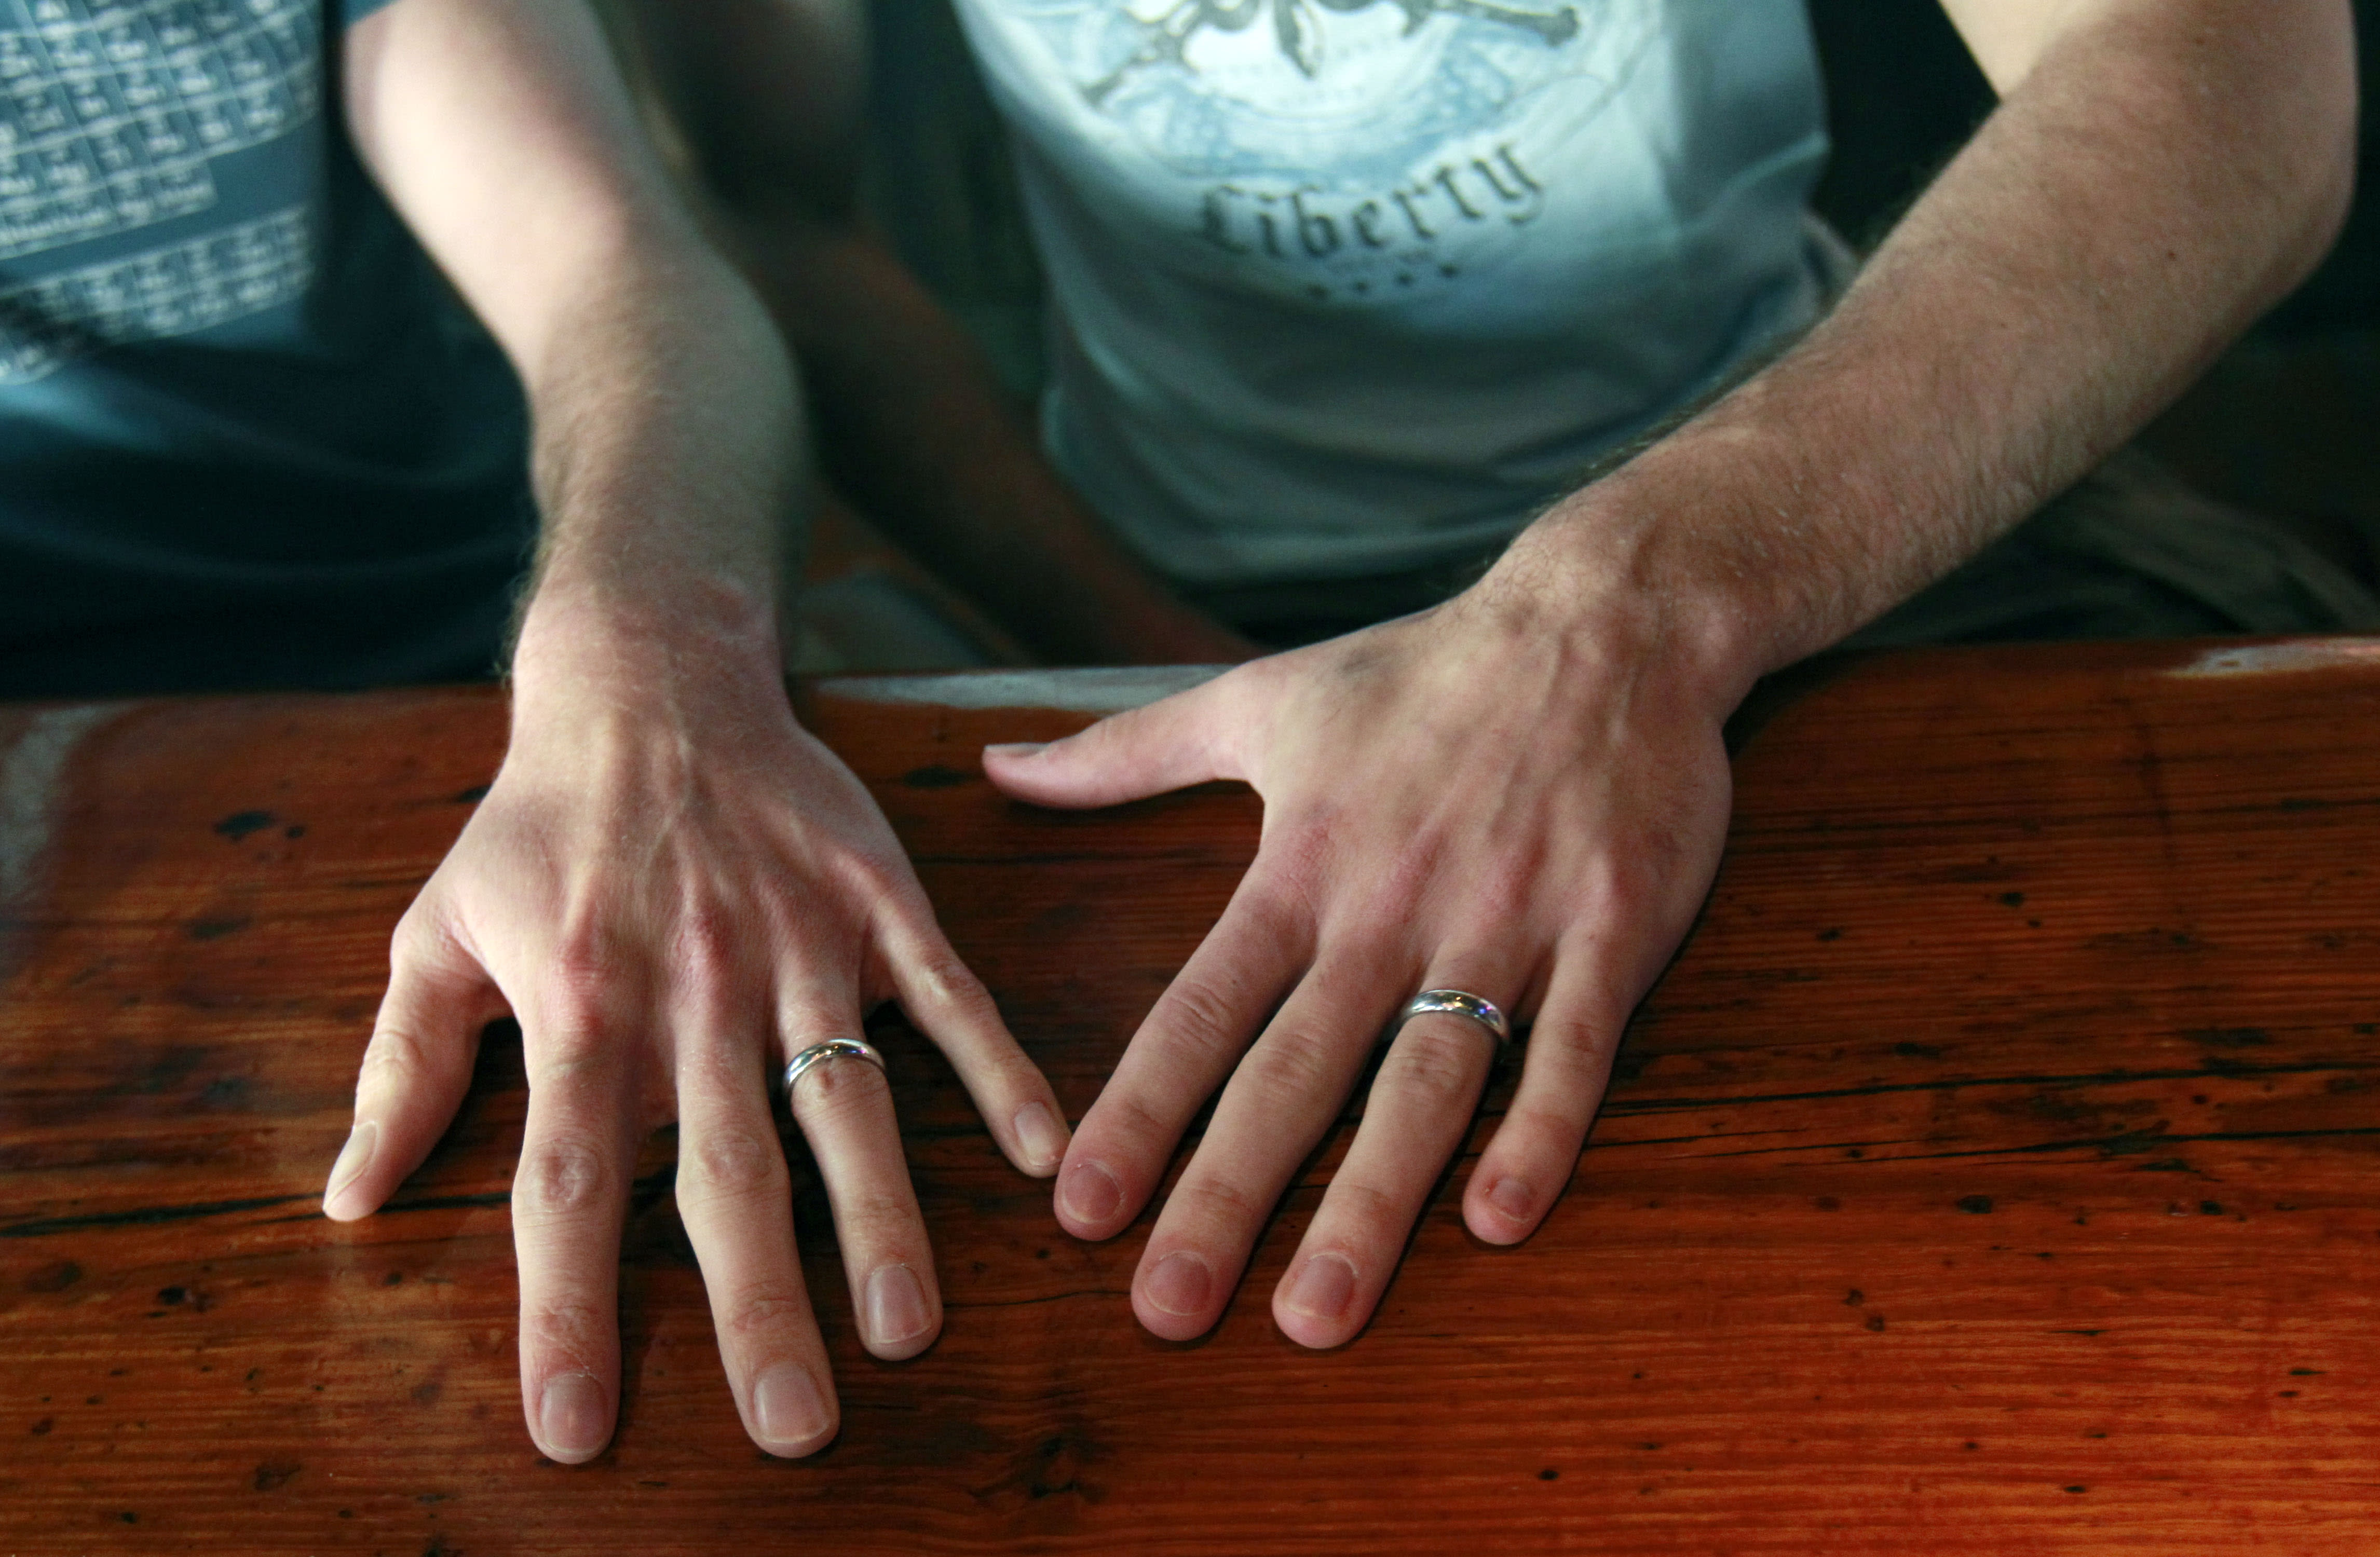 David Peters, right, and Luke Whited, a gay couple who were joined in a civil union in their home state of Illinois, show their rings inside the Bourbon Pub, a gay bar, after being interviewed about President Obama's statement of support of gay marriage, in New Orleans, Wednesday, May 9, 2012. Ending months of equivocation, Obama declared his support for gay marriage, the first U.S. president to do so. His announcement, a day after North Carolina conservatives turned out in force to vote to strengthen the state's gay marriage ban, injects a potentially polarizing issue into the 2012 race for the White House. (AP Photo/Gerald Herbert)